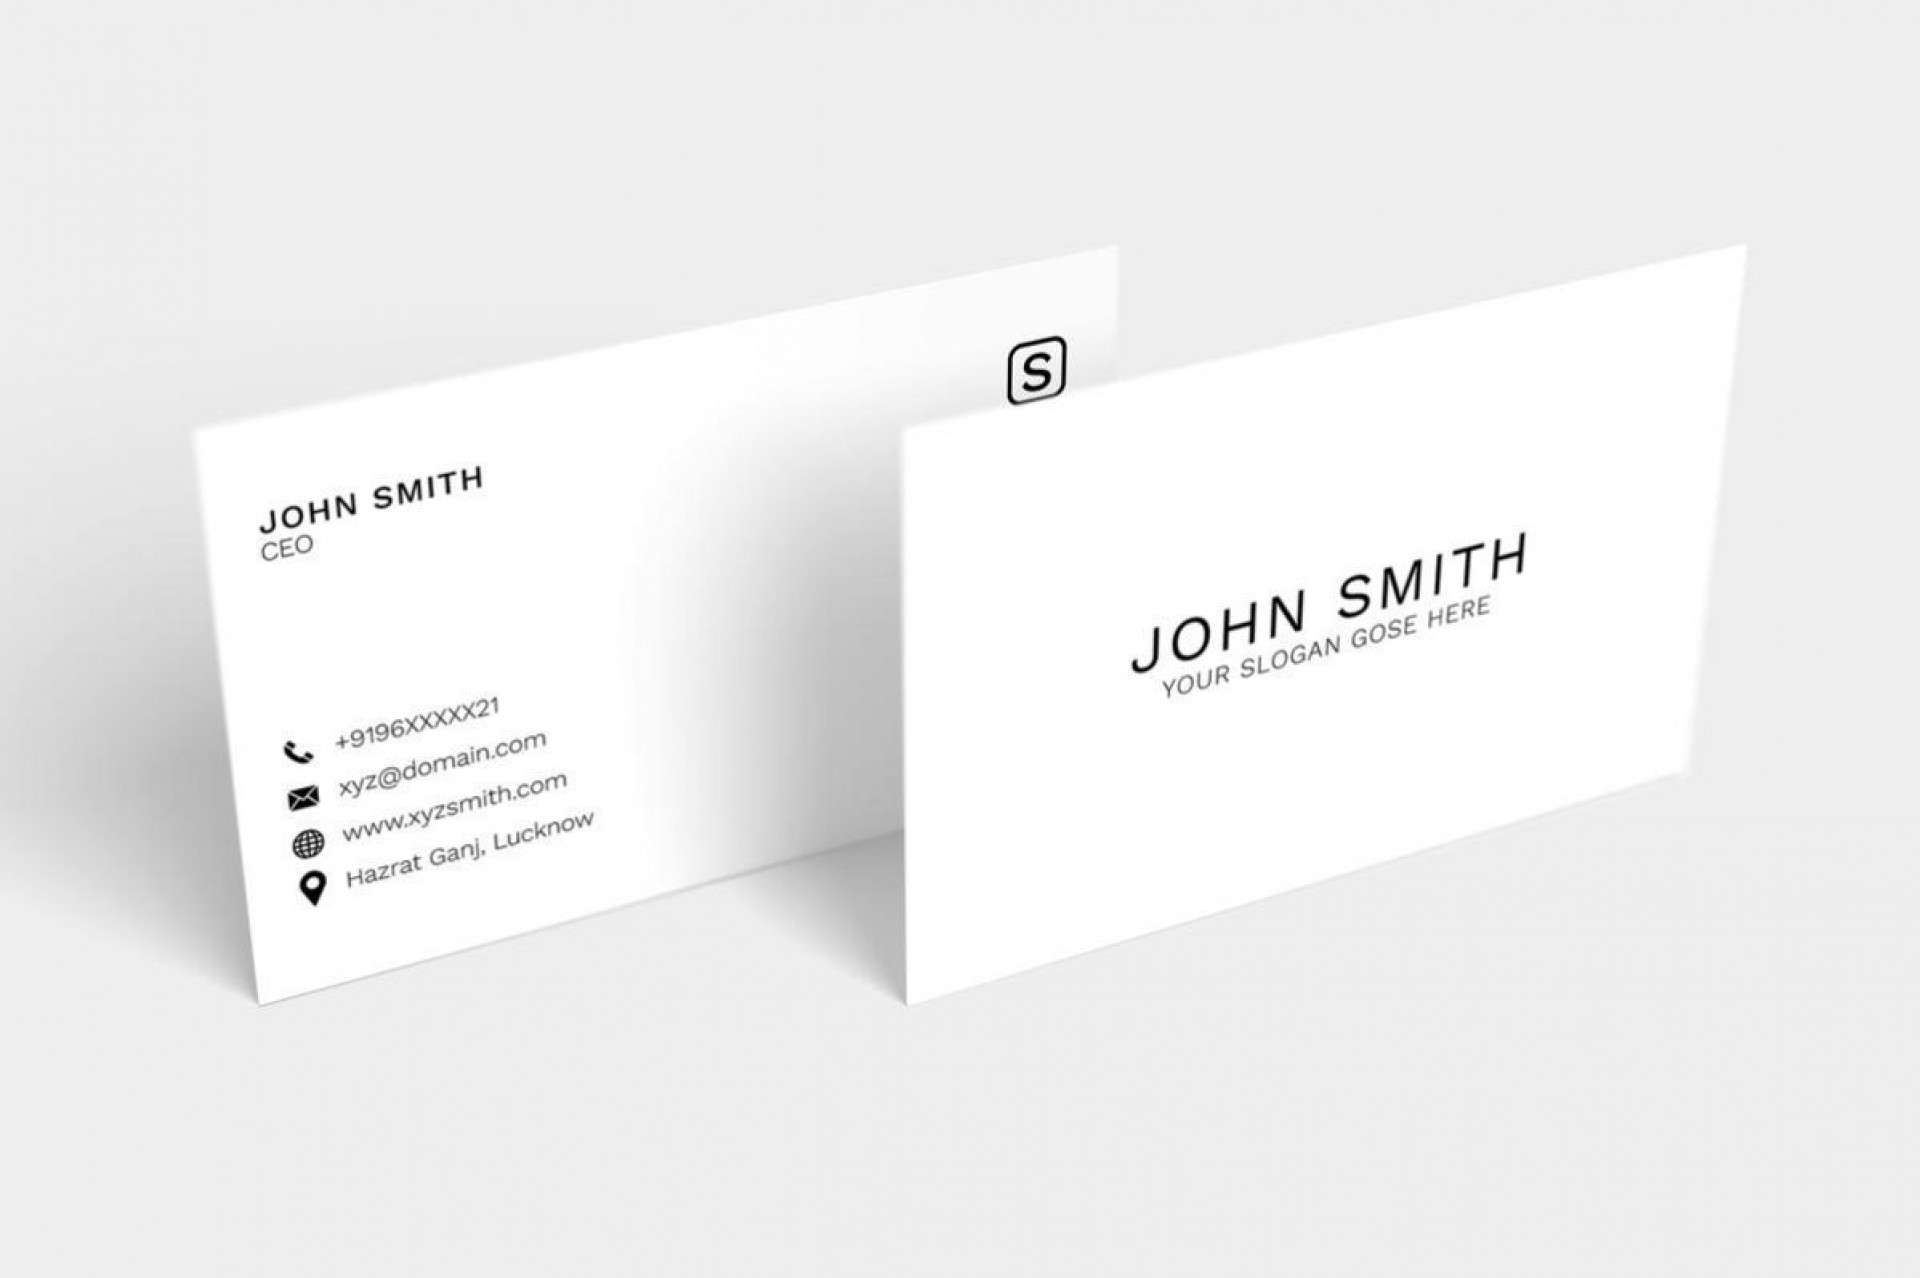 003 Unforgettable Simple Busines Card Template Psd High Def  Design In Photoshop Minimalist Free1920